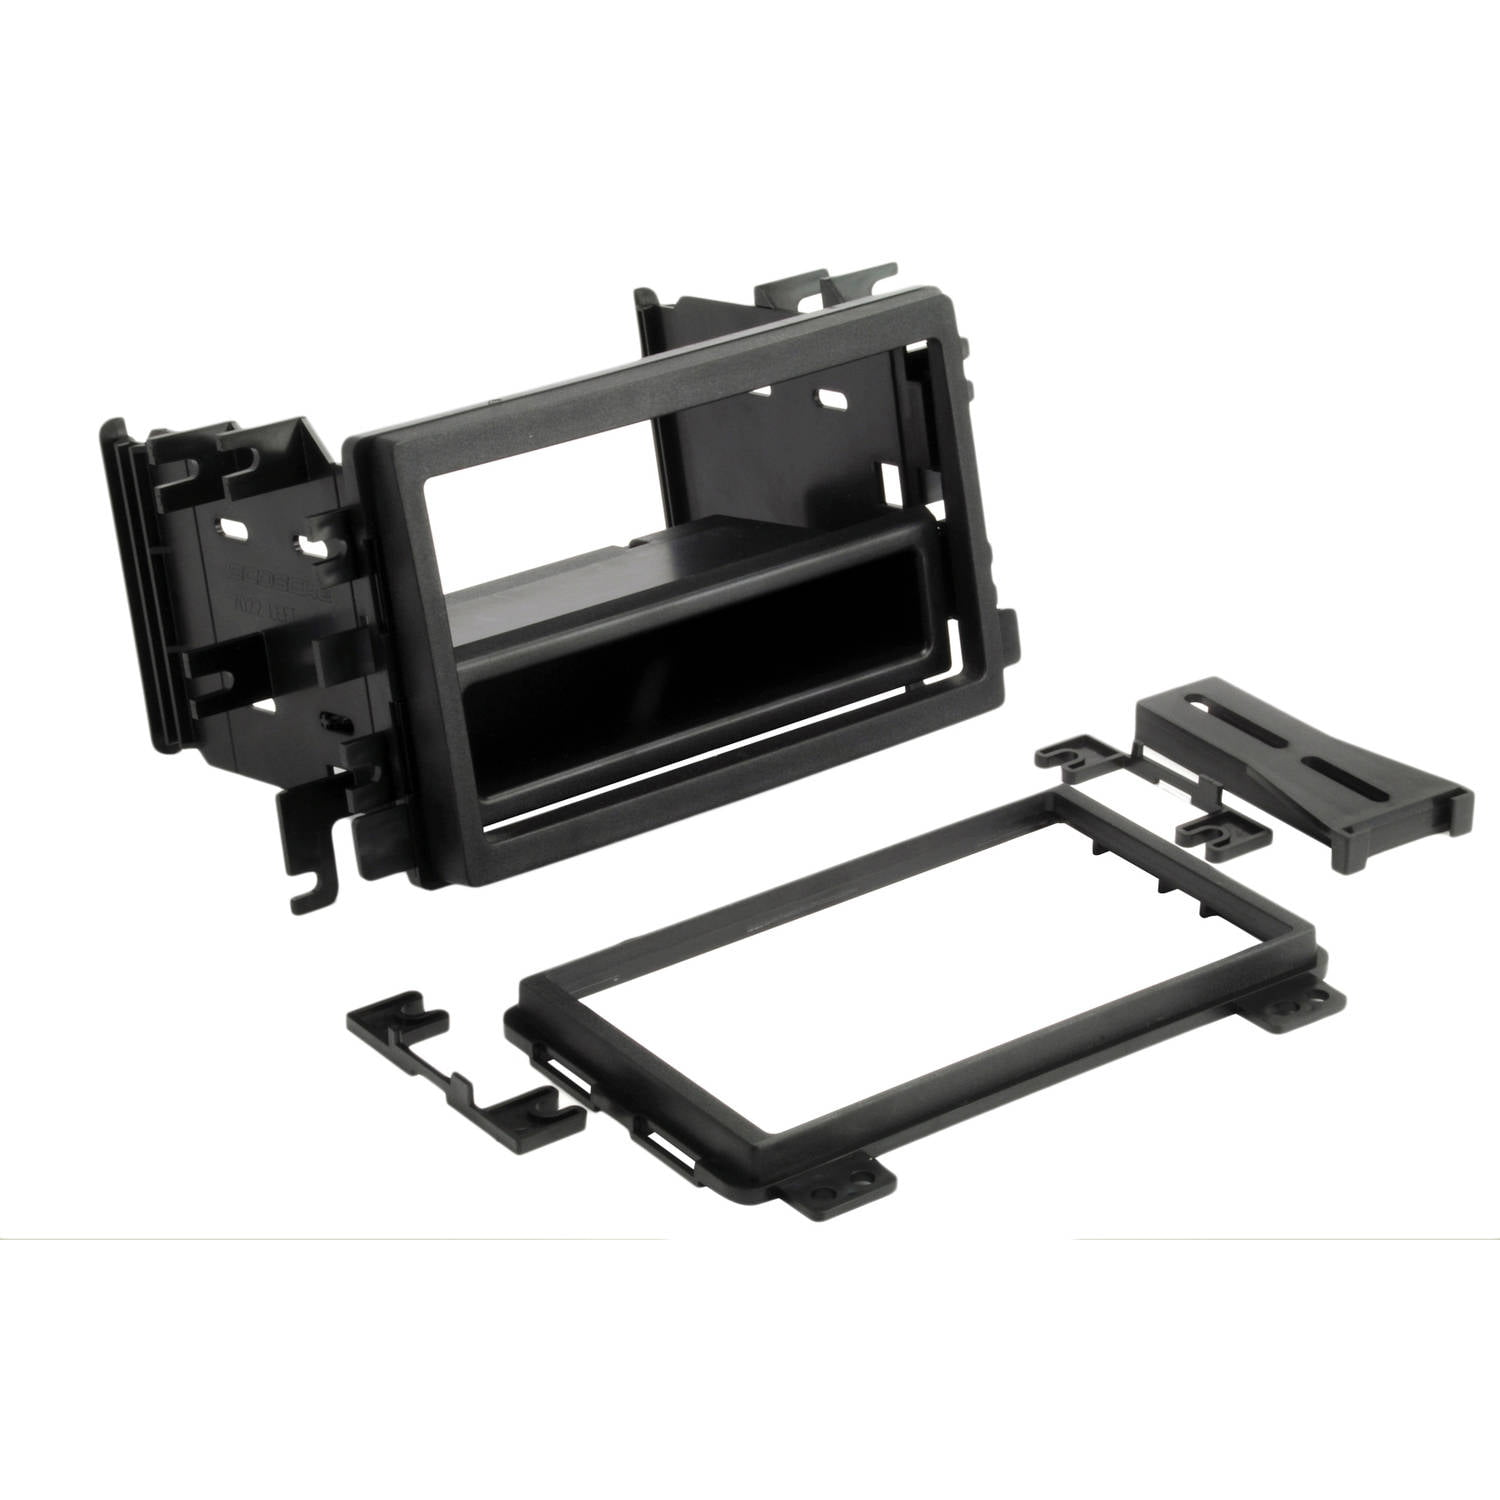 Scosche FD3090 In-Dash Install Kit for 1995 and Up Ford Vehicles -  Walmart.com